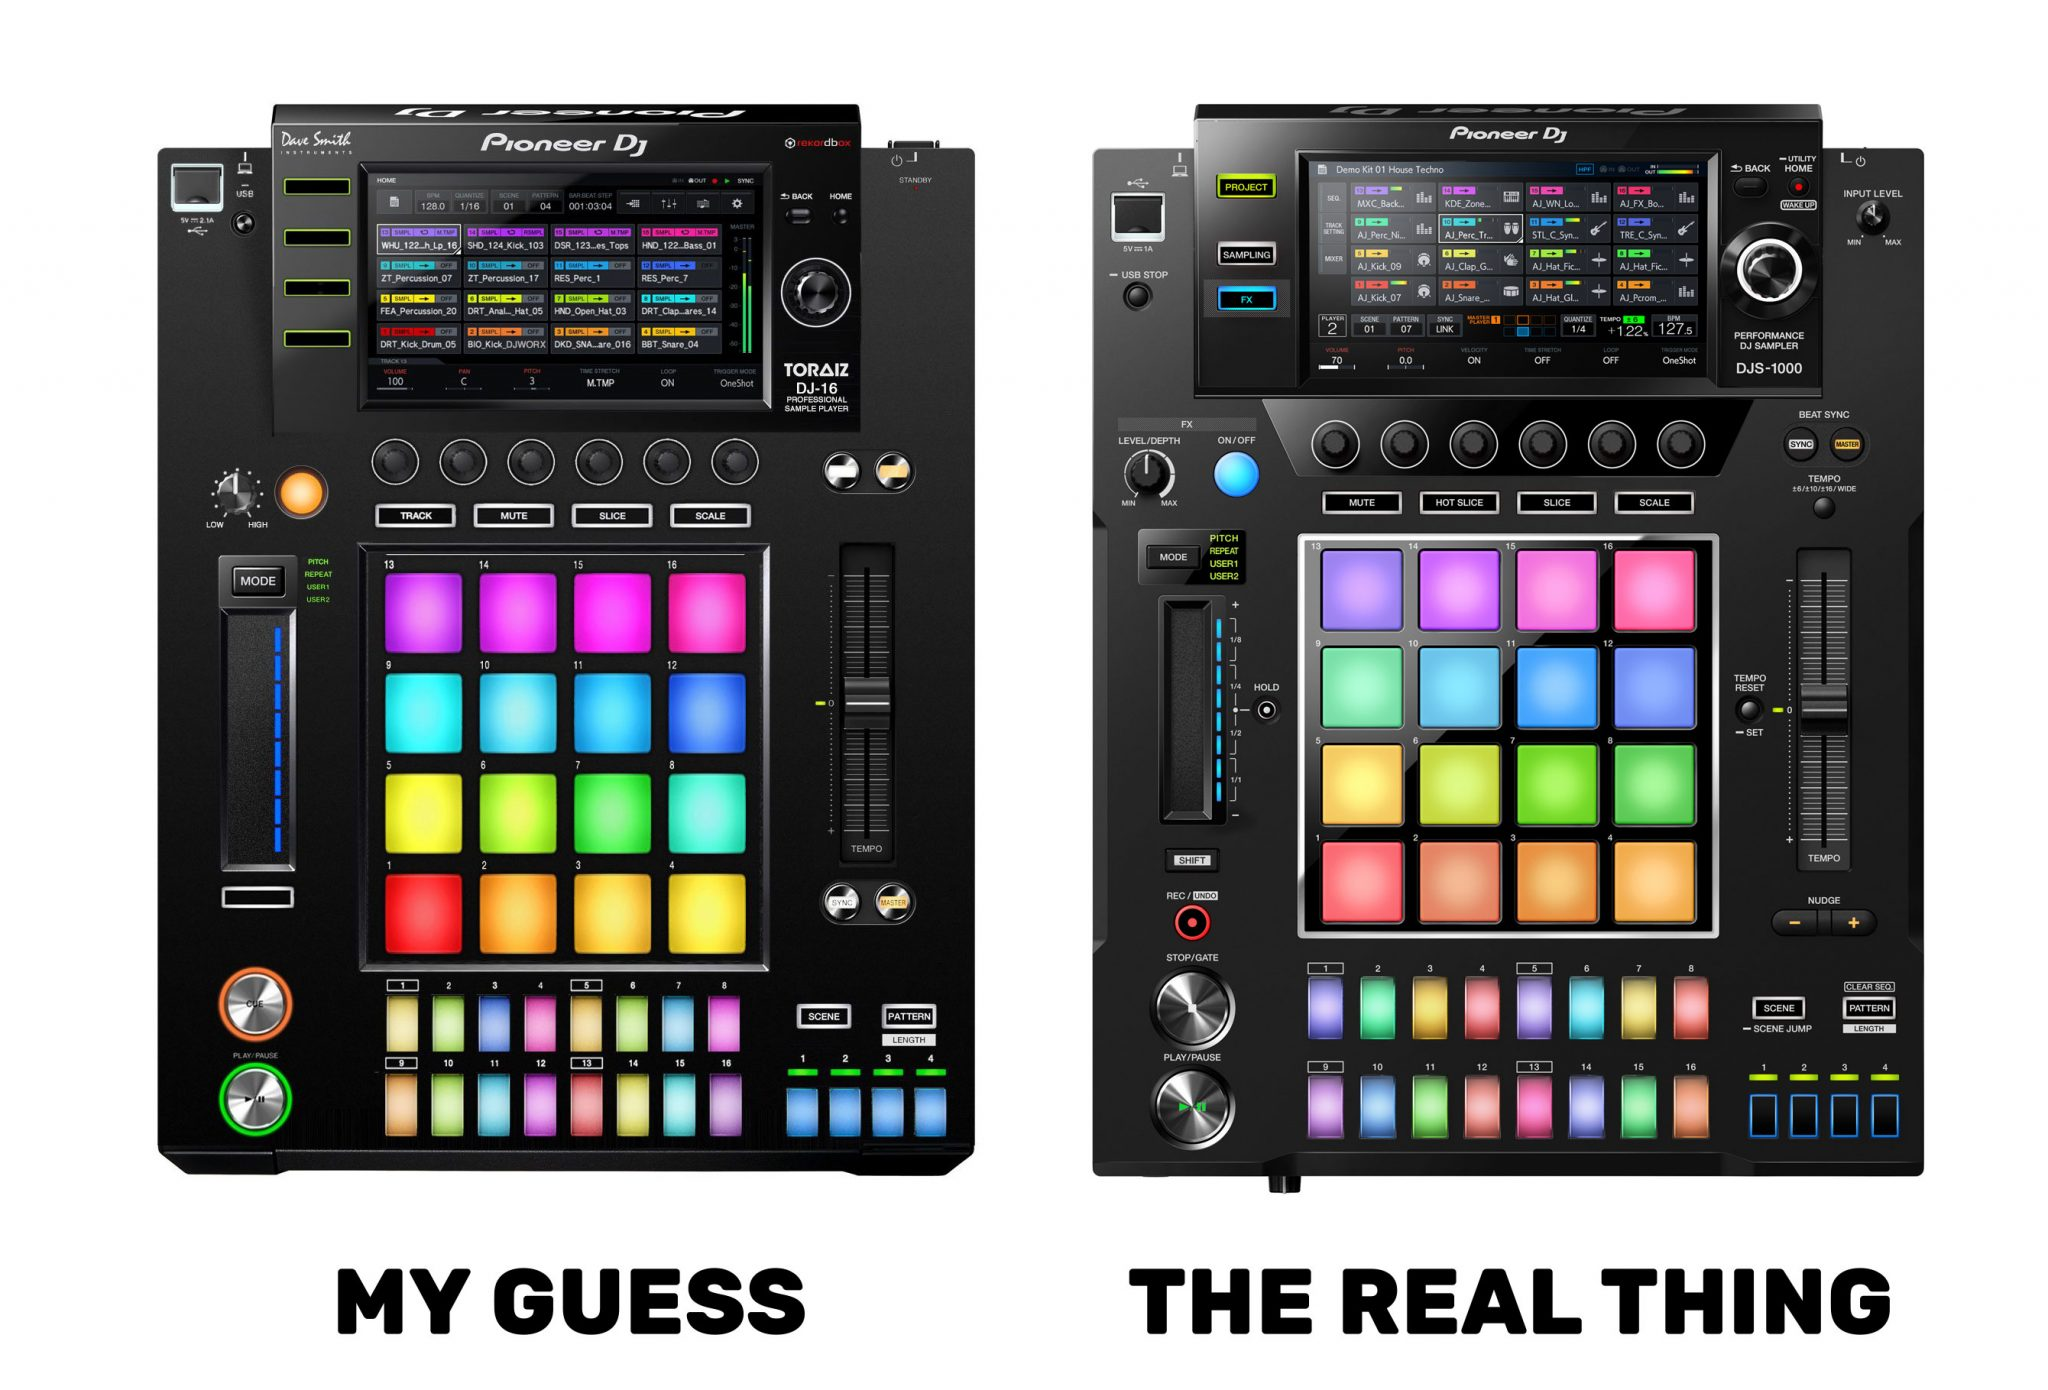 Bad Dj Set It S Real The Djs 1000 Is A Sampler And Sequencer In A Cdj Box